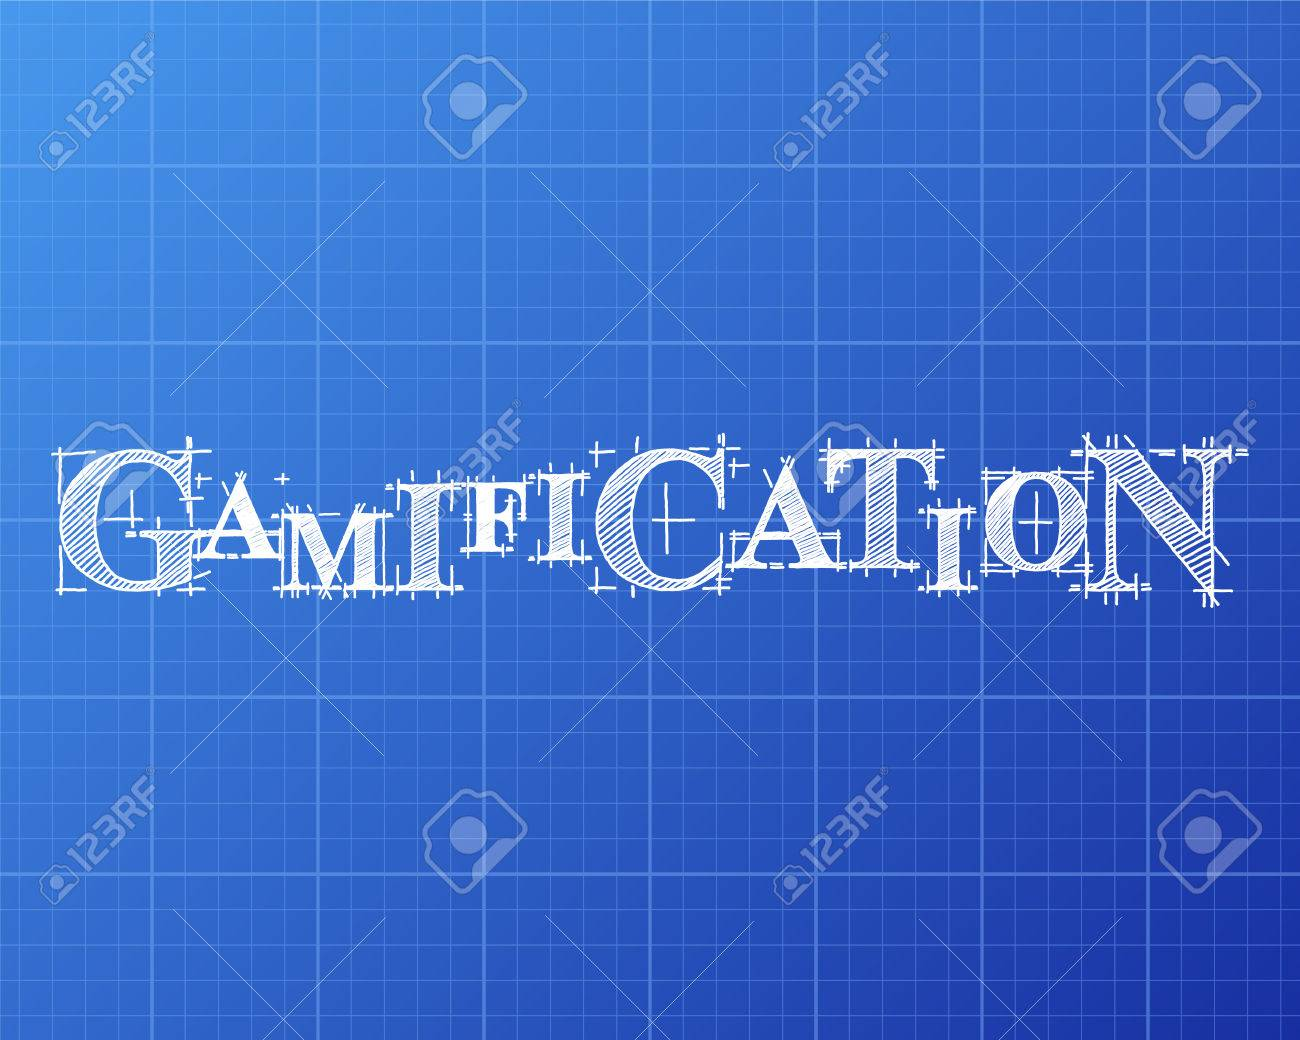 Gamification Text Hand Drawn On Blueprint Background Stock Vector   77459419